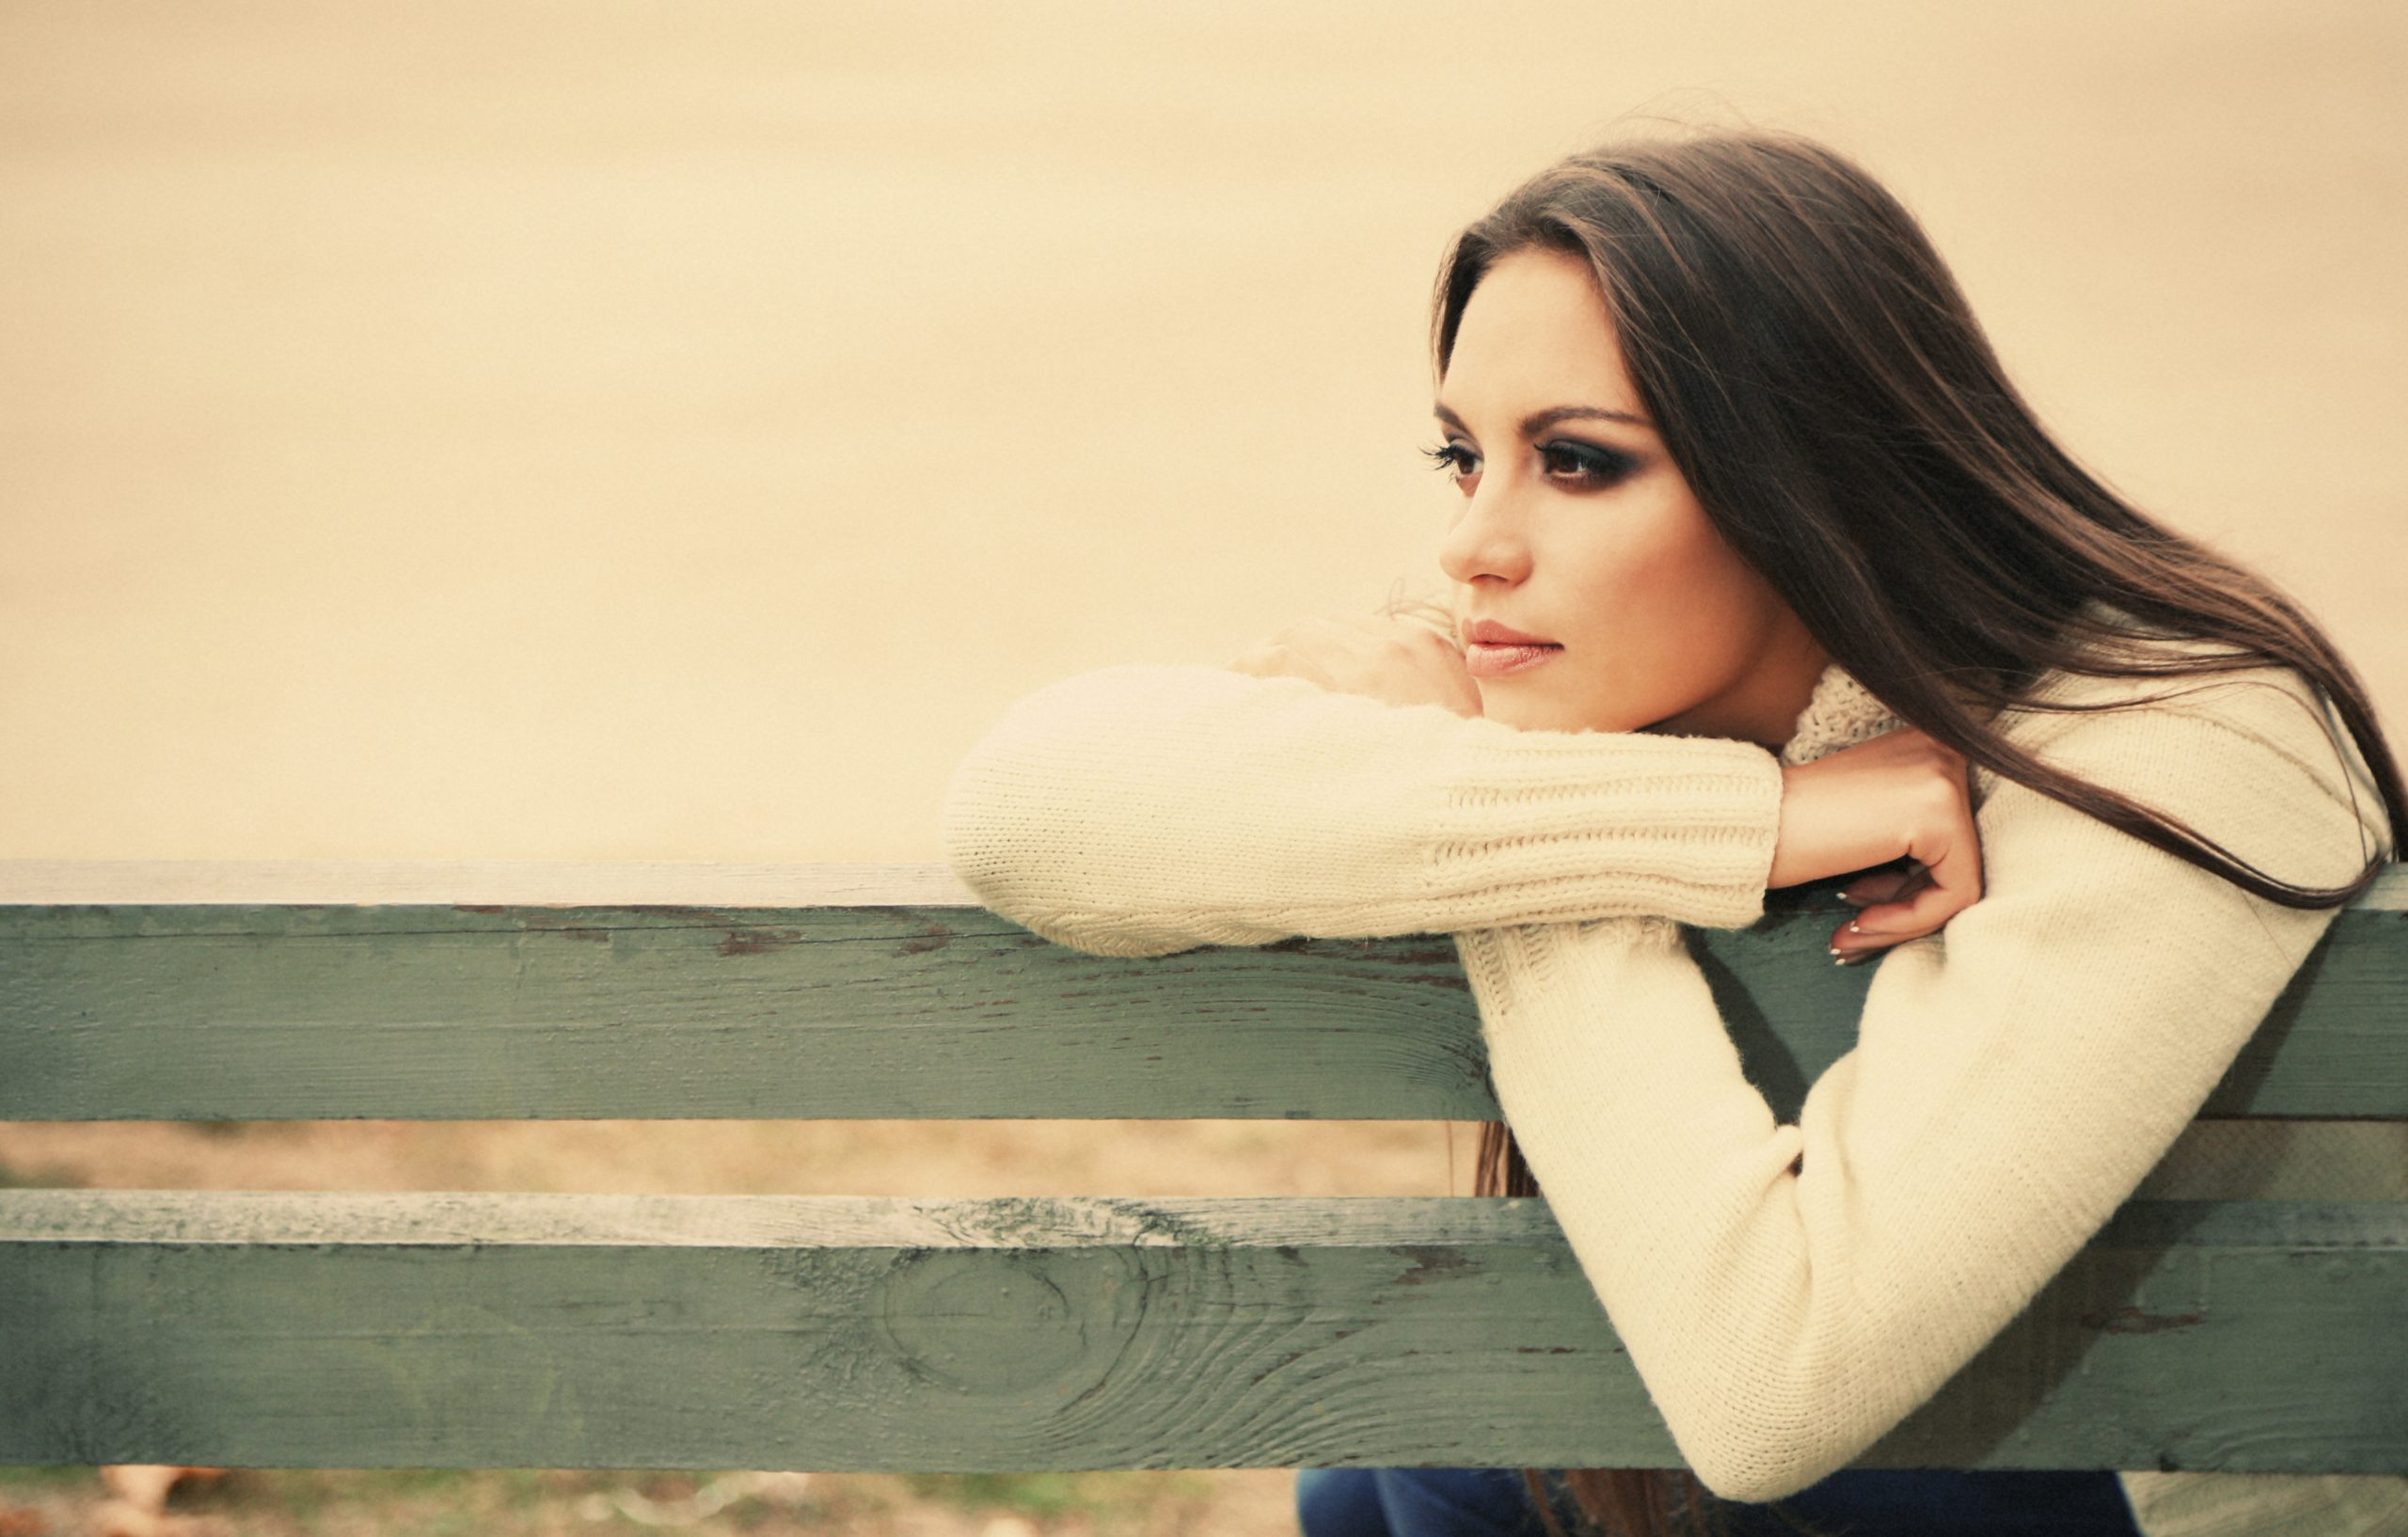 Woman on bench looking out